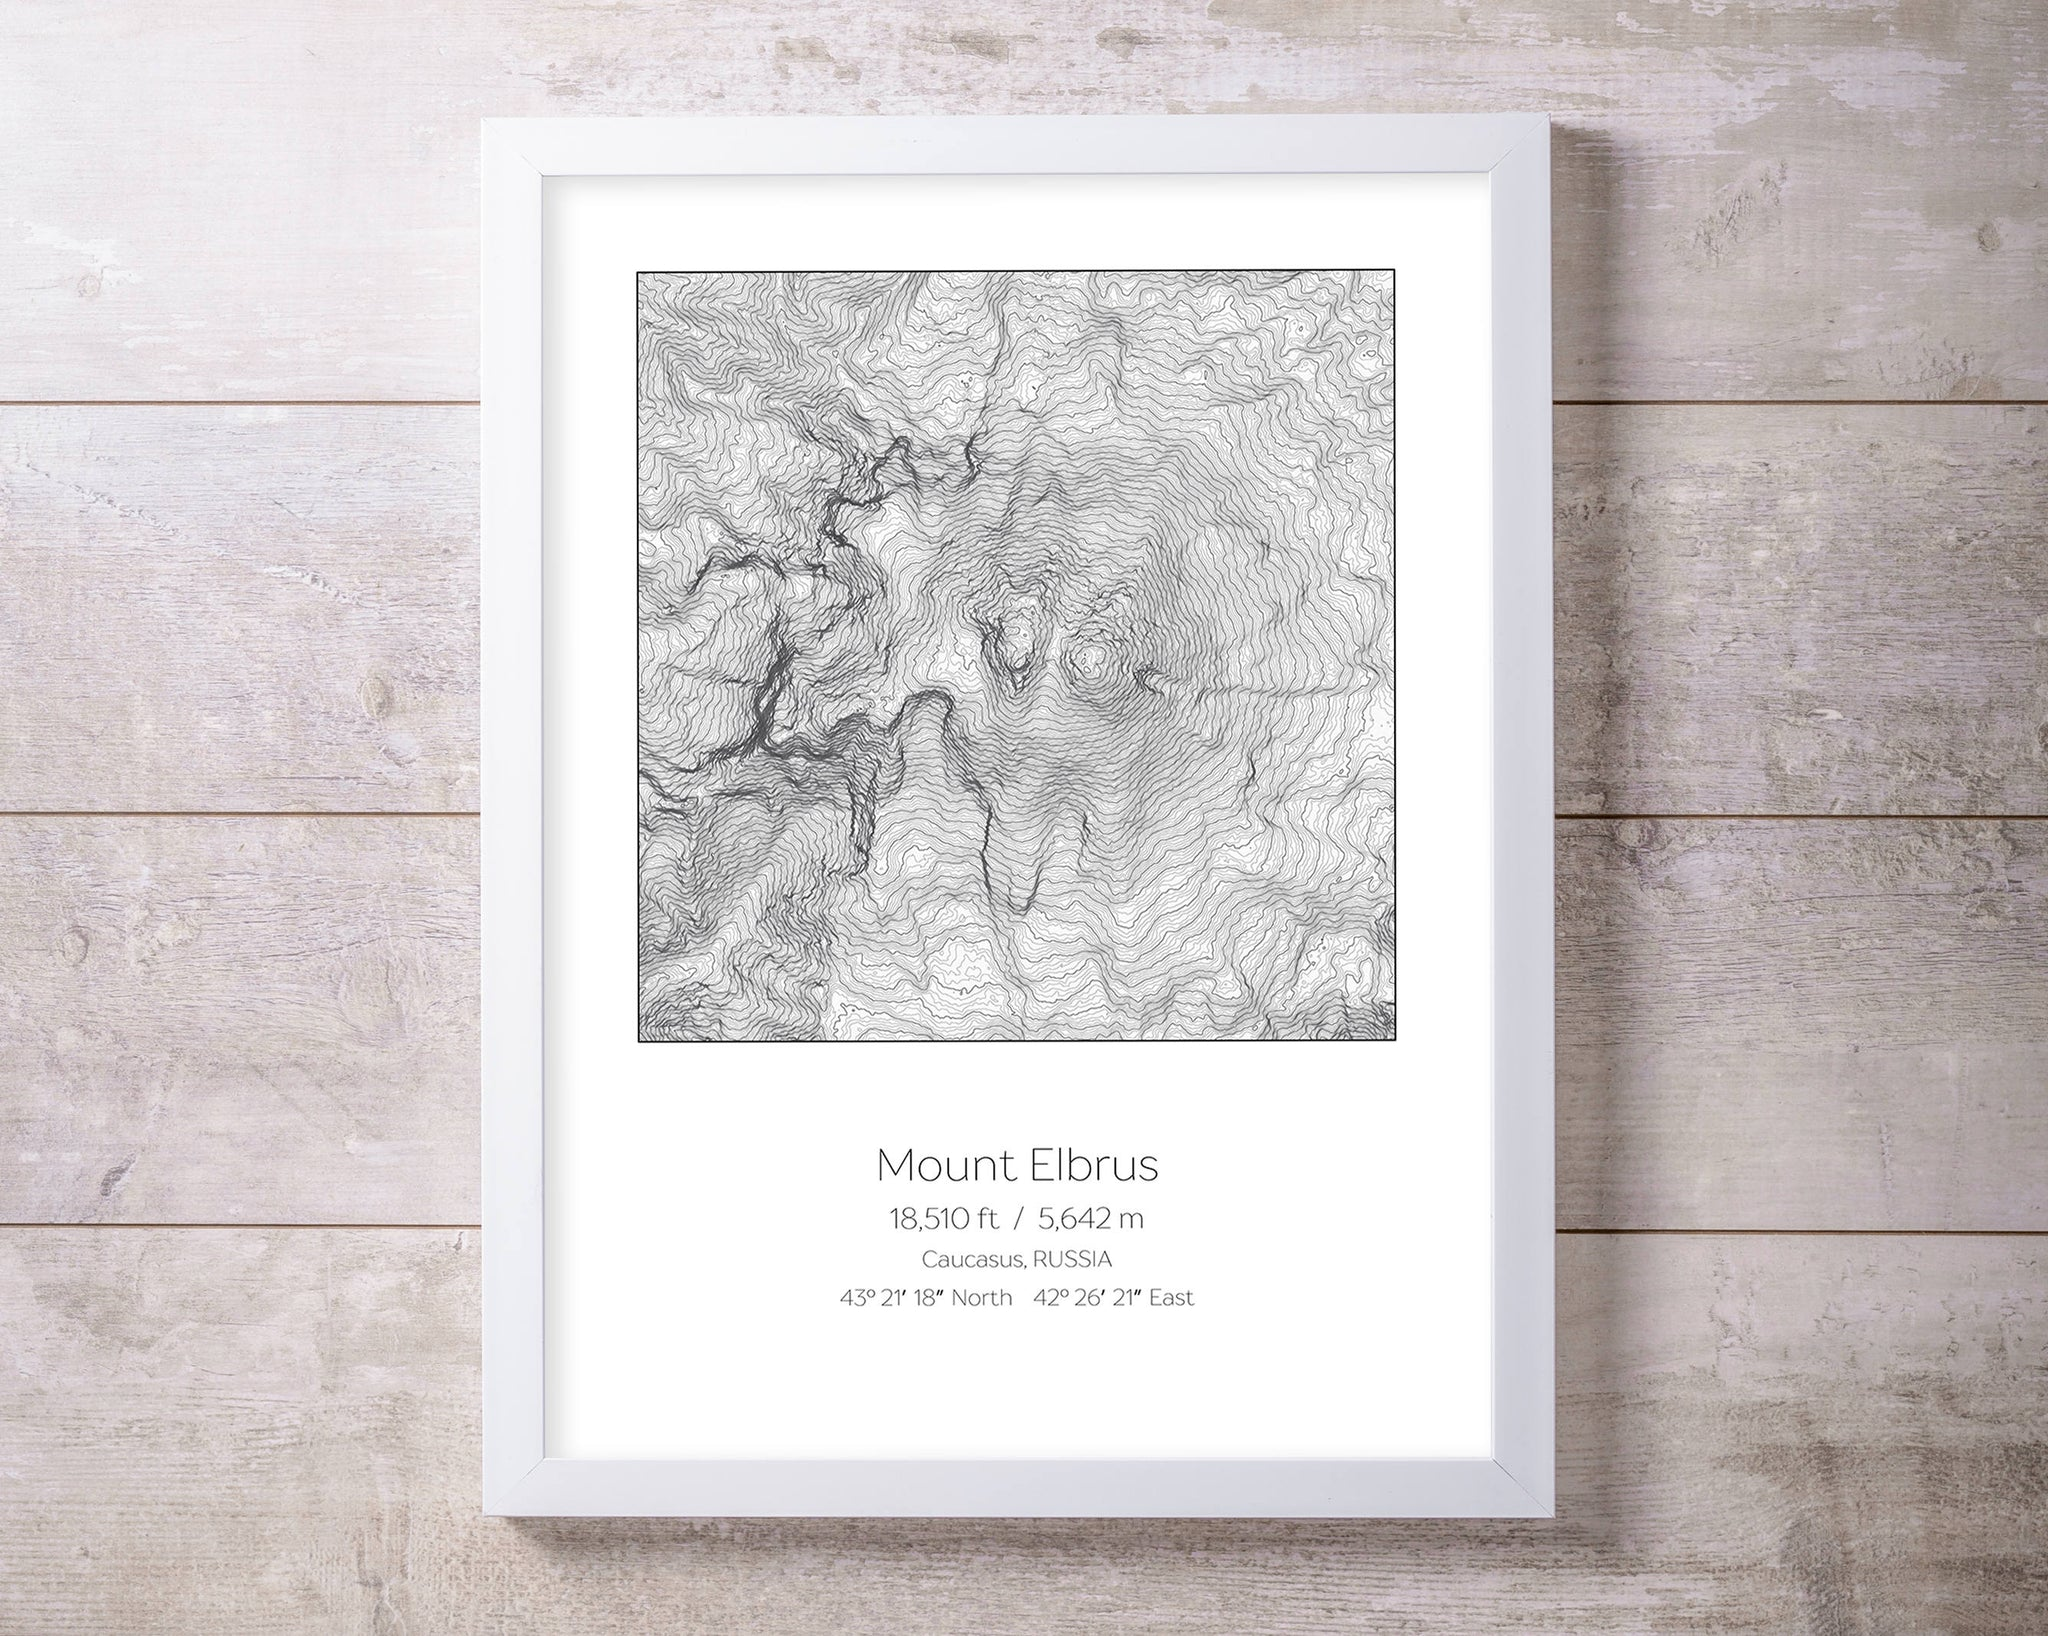 Mount Elbrus, Russia Topography Elevation Print Wall Art